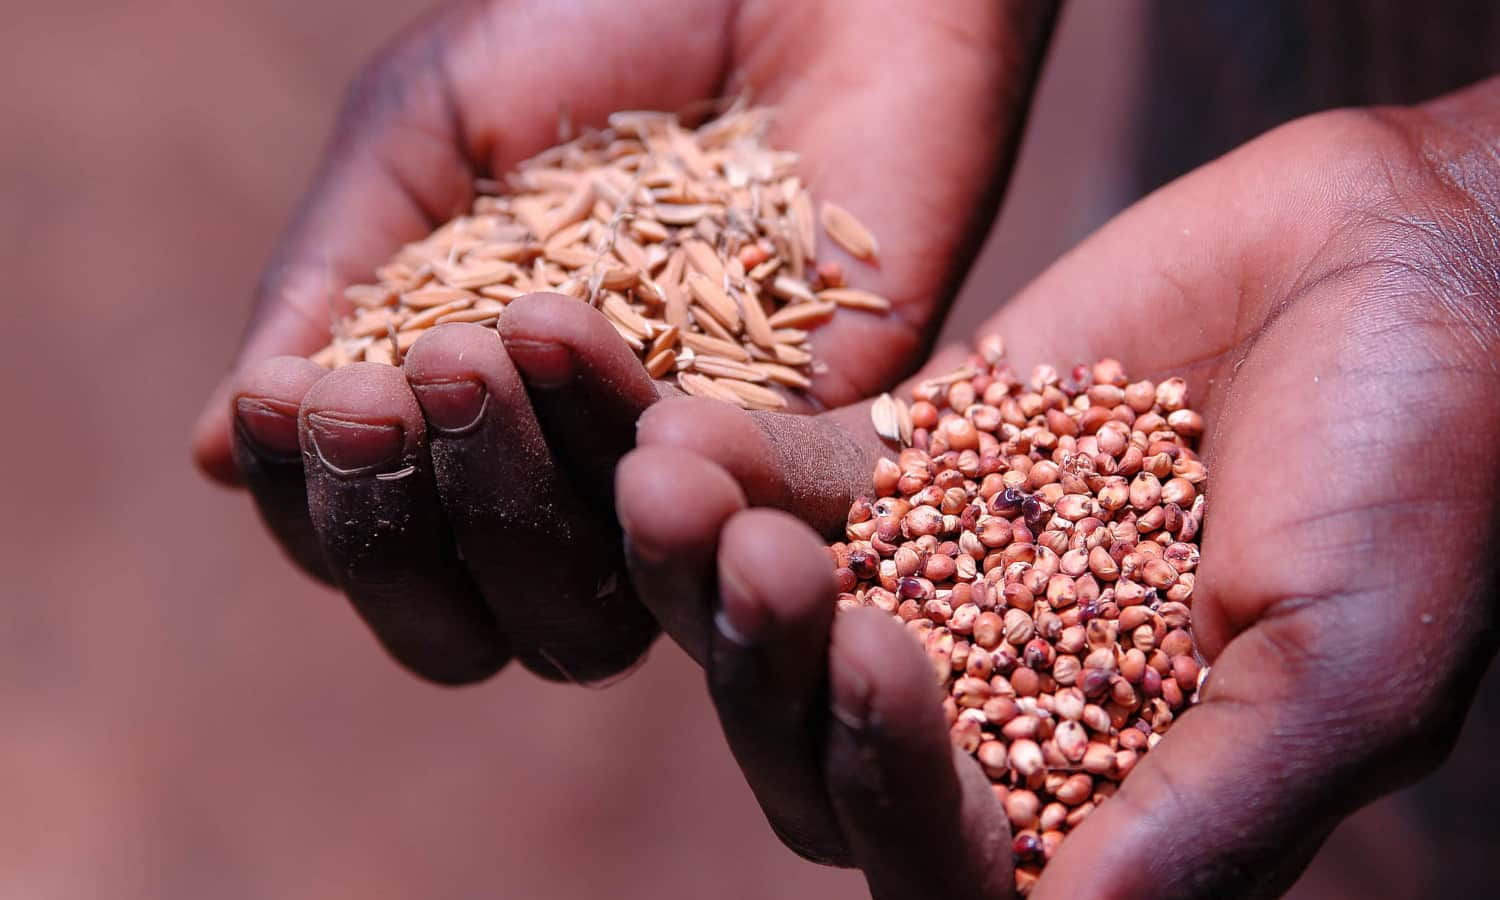 Study shows that millet consumption decreases blood glucose, helping manage diabetes.